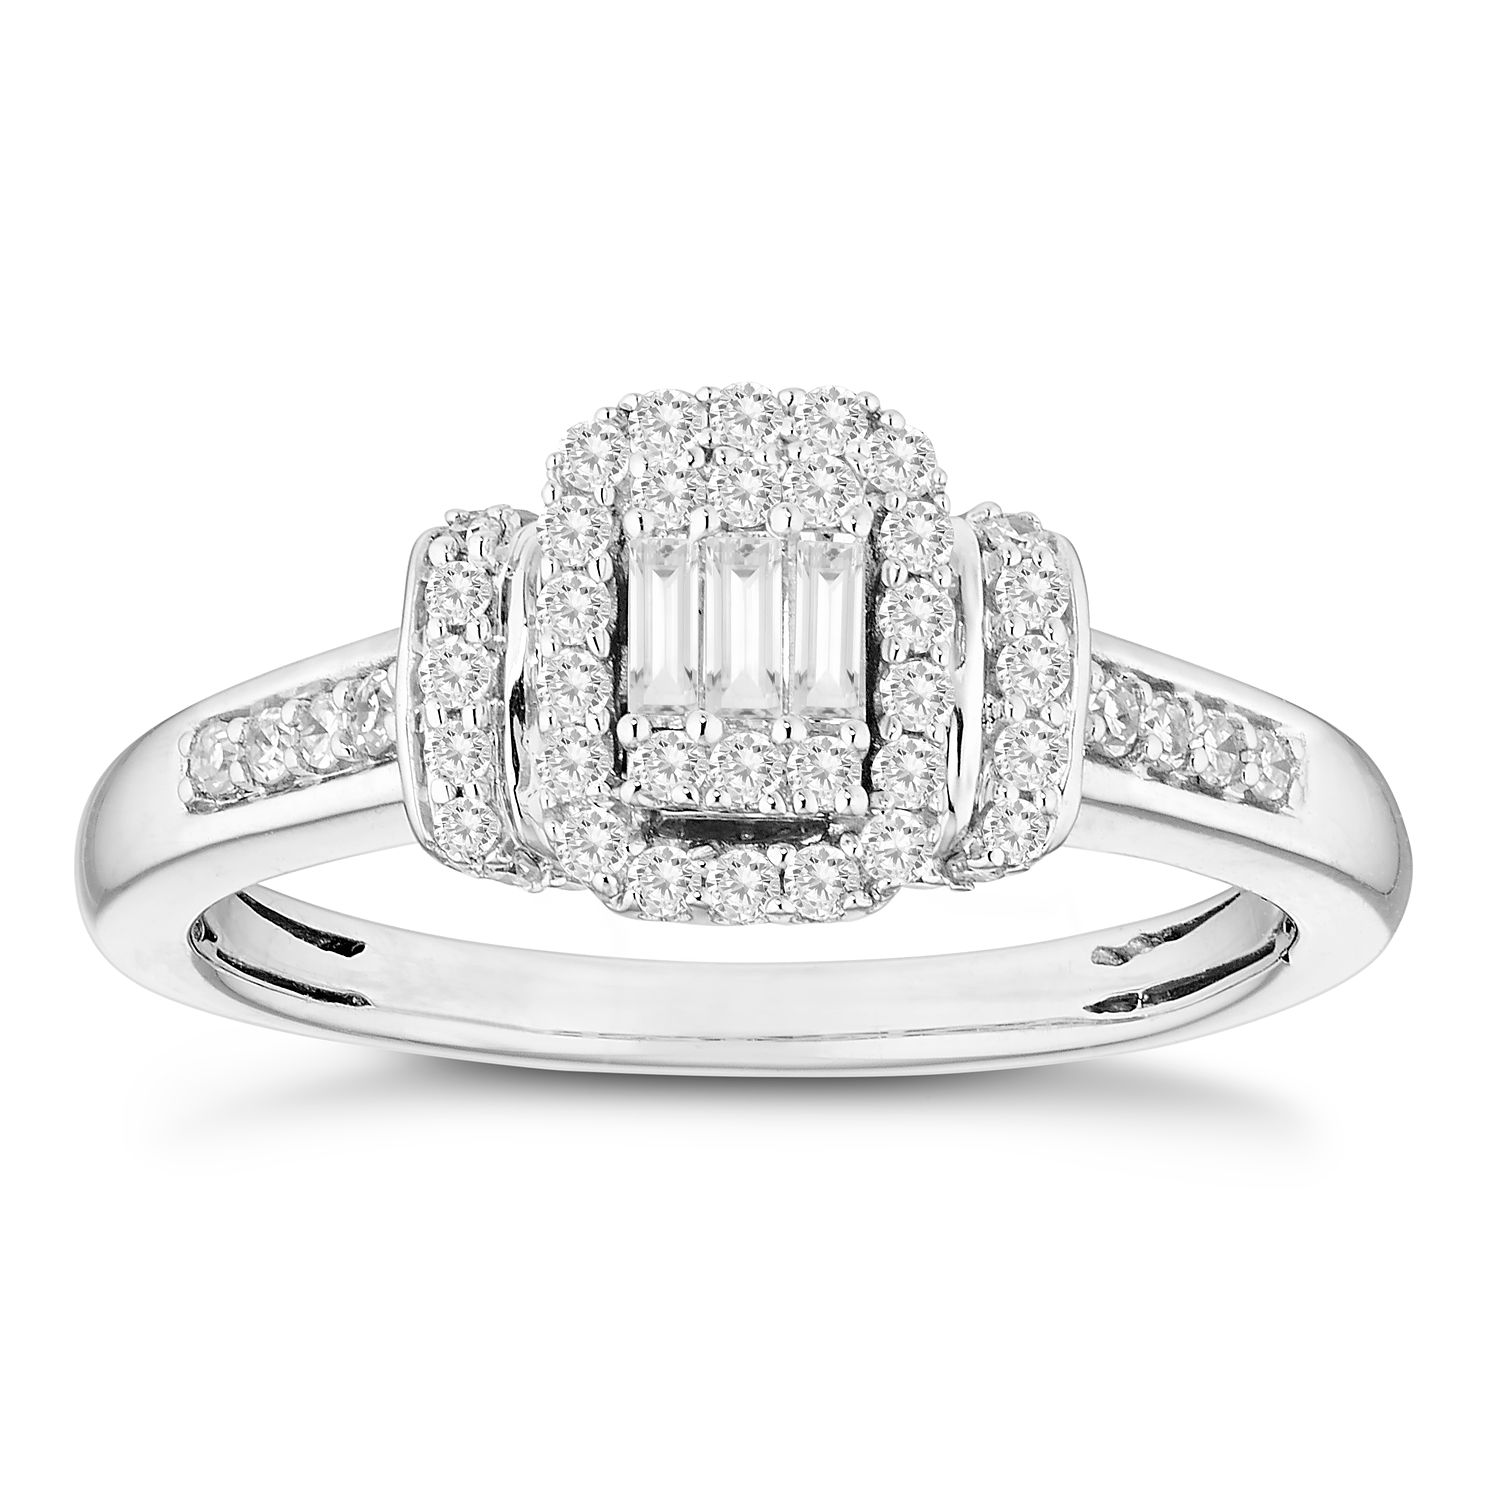 9ct White Gold 0.33ct Total Diamond Baguette Round Cut Ring - Product number 4672593